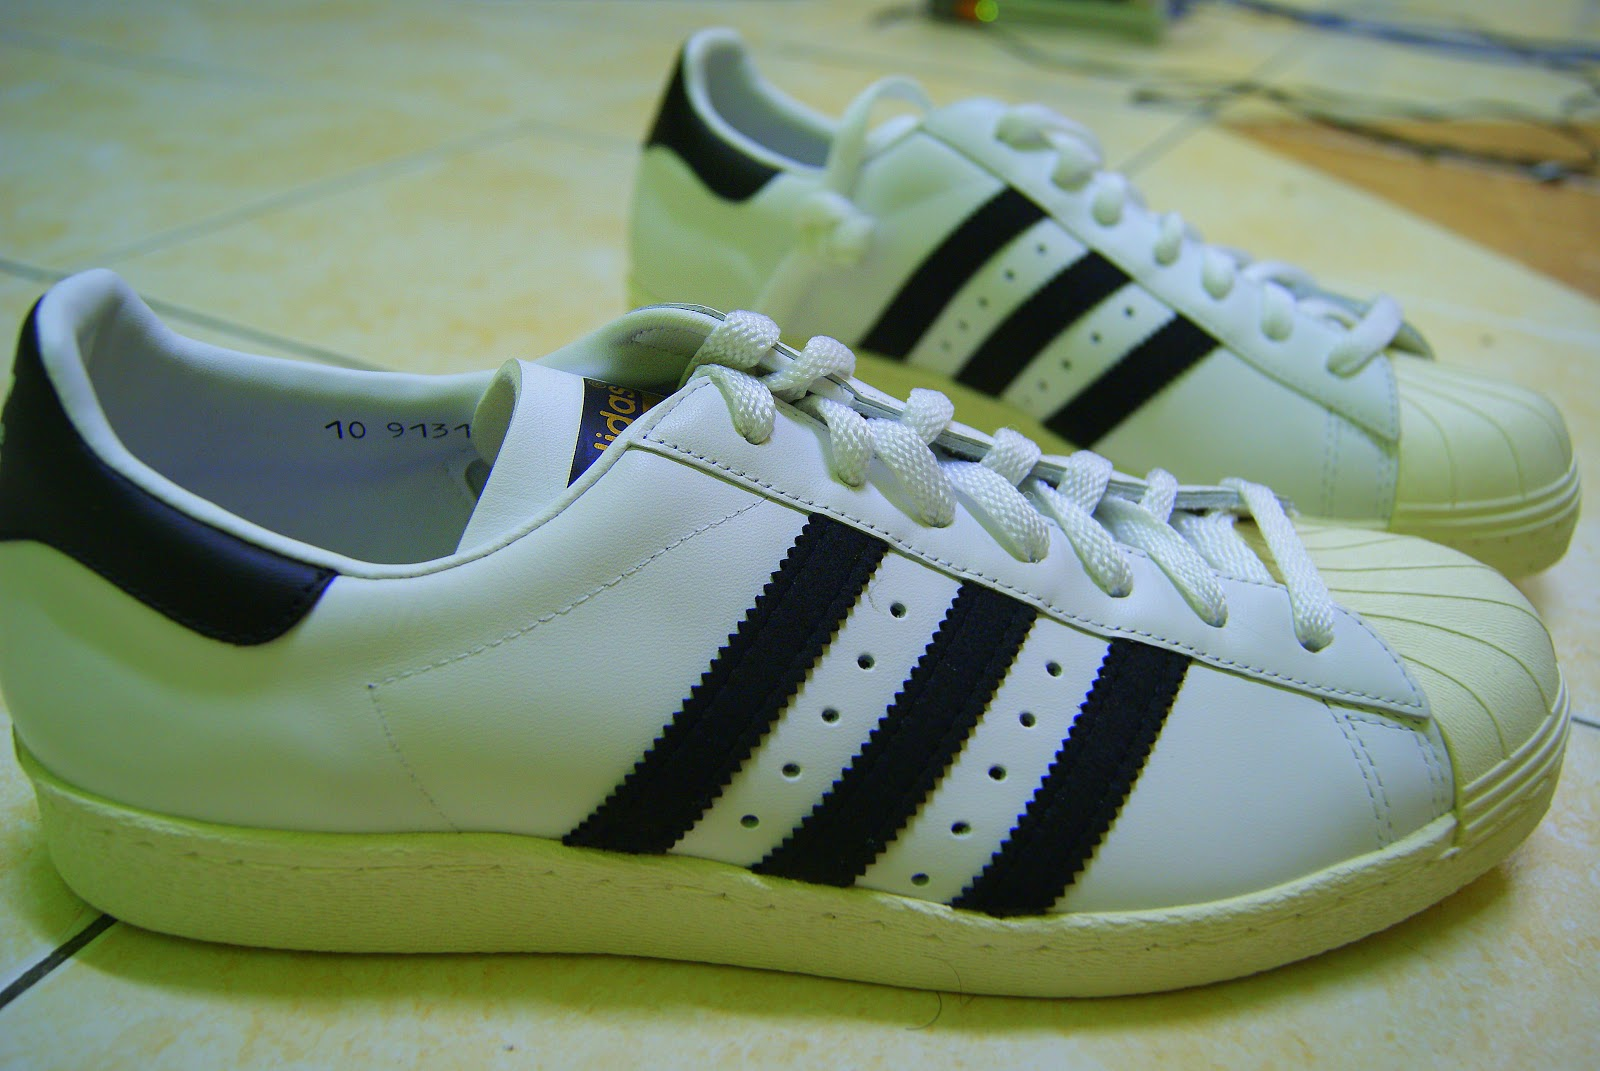 Adidas Superstar Shoes Fake